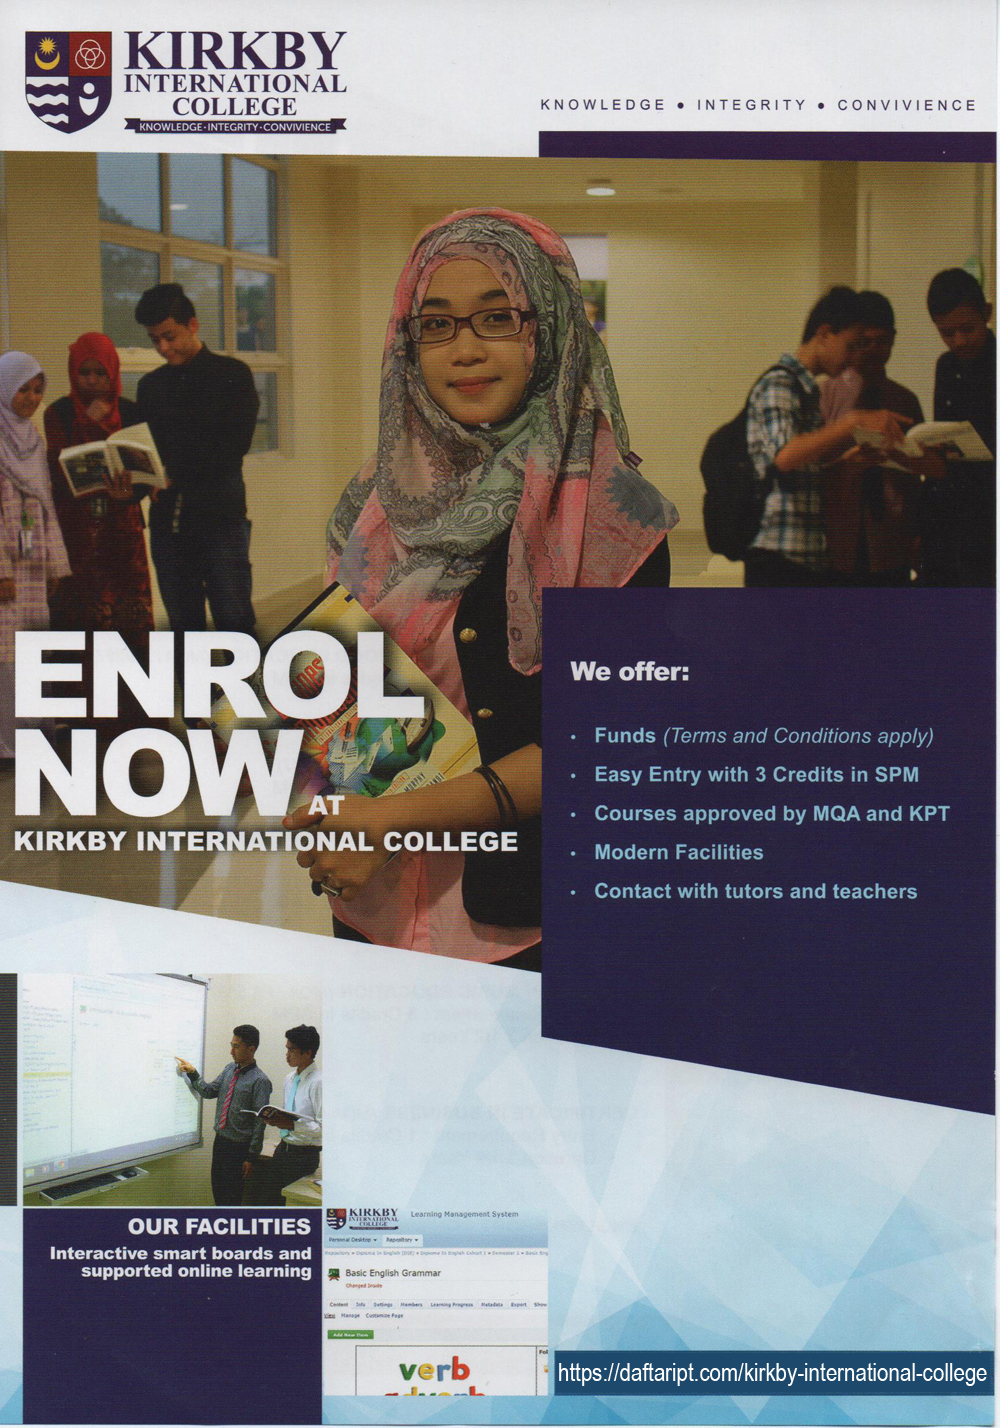 Kirkby-International-College-General